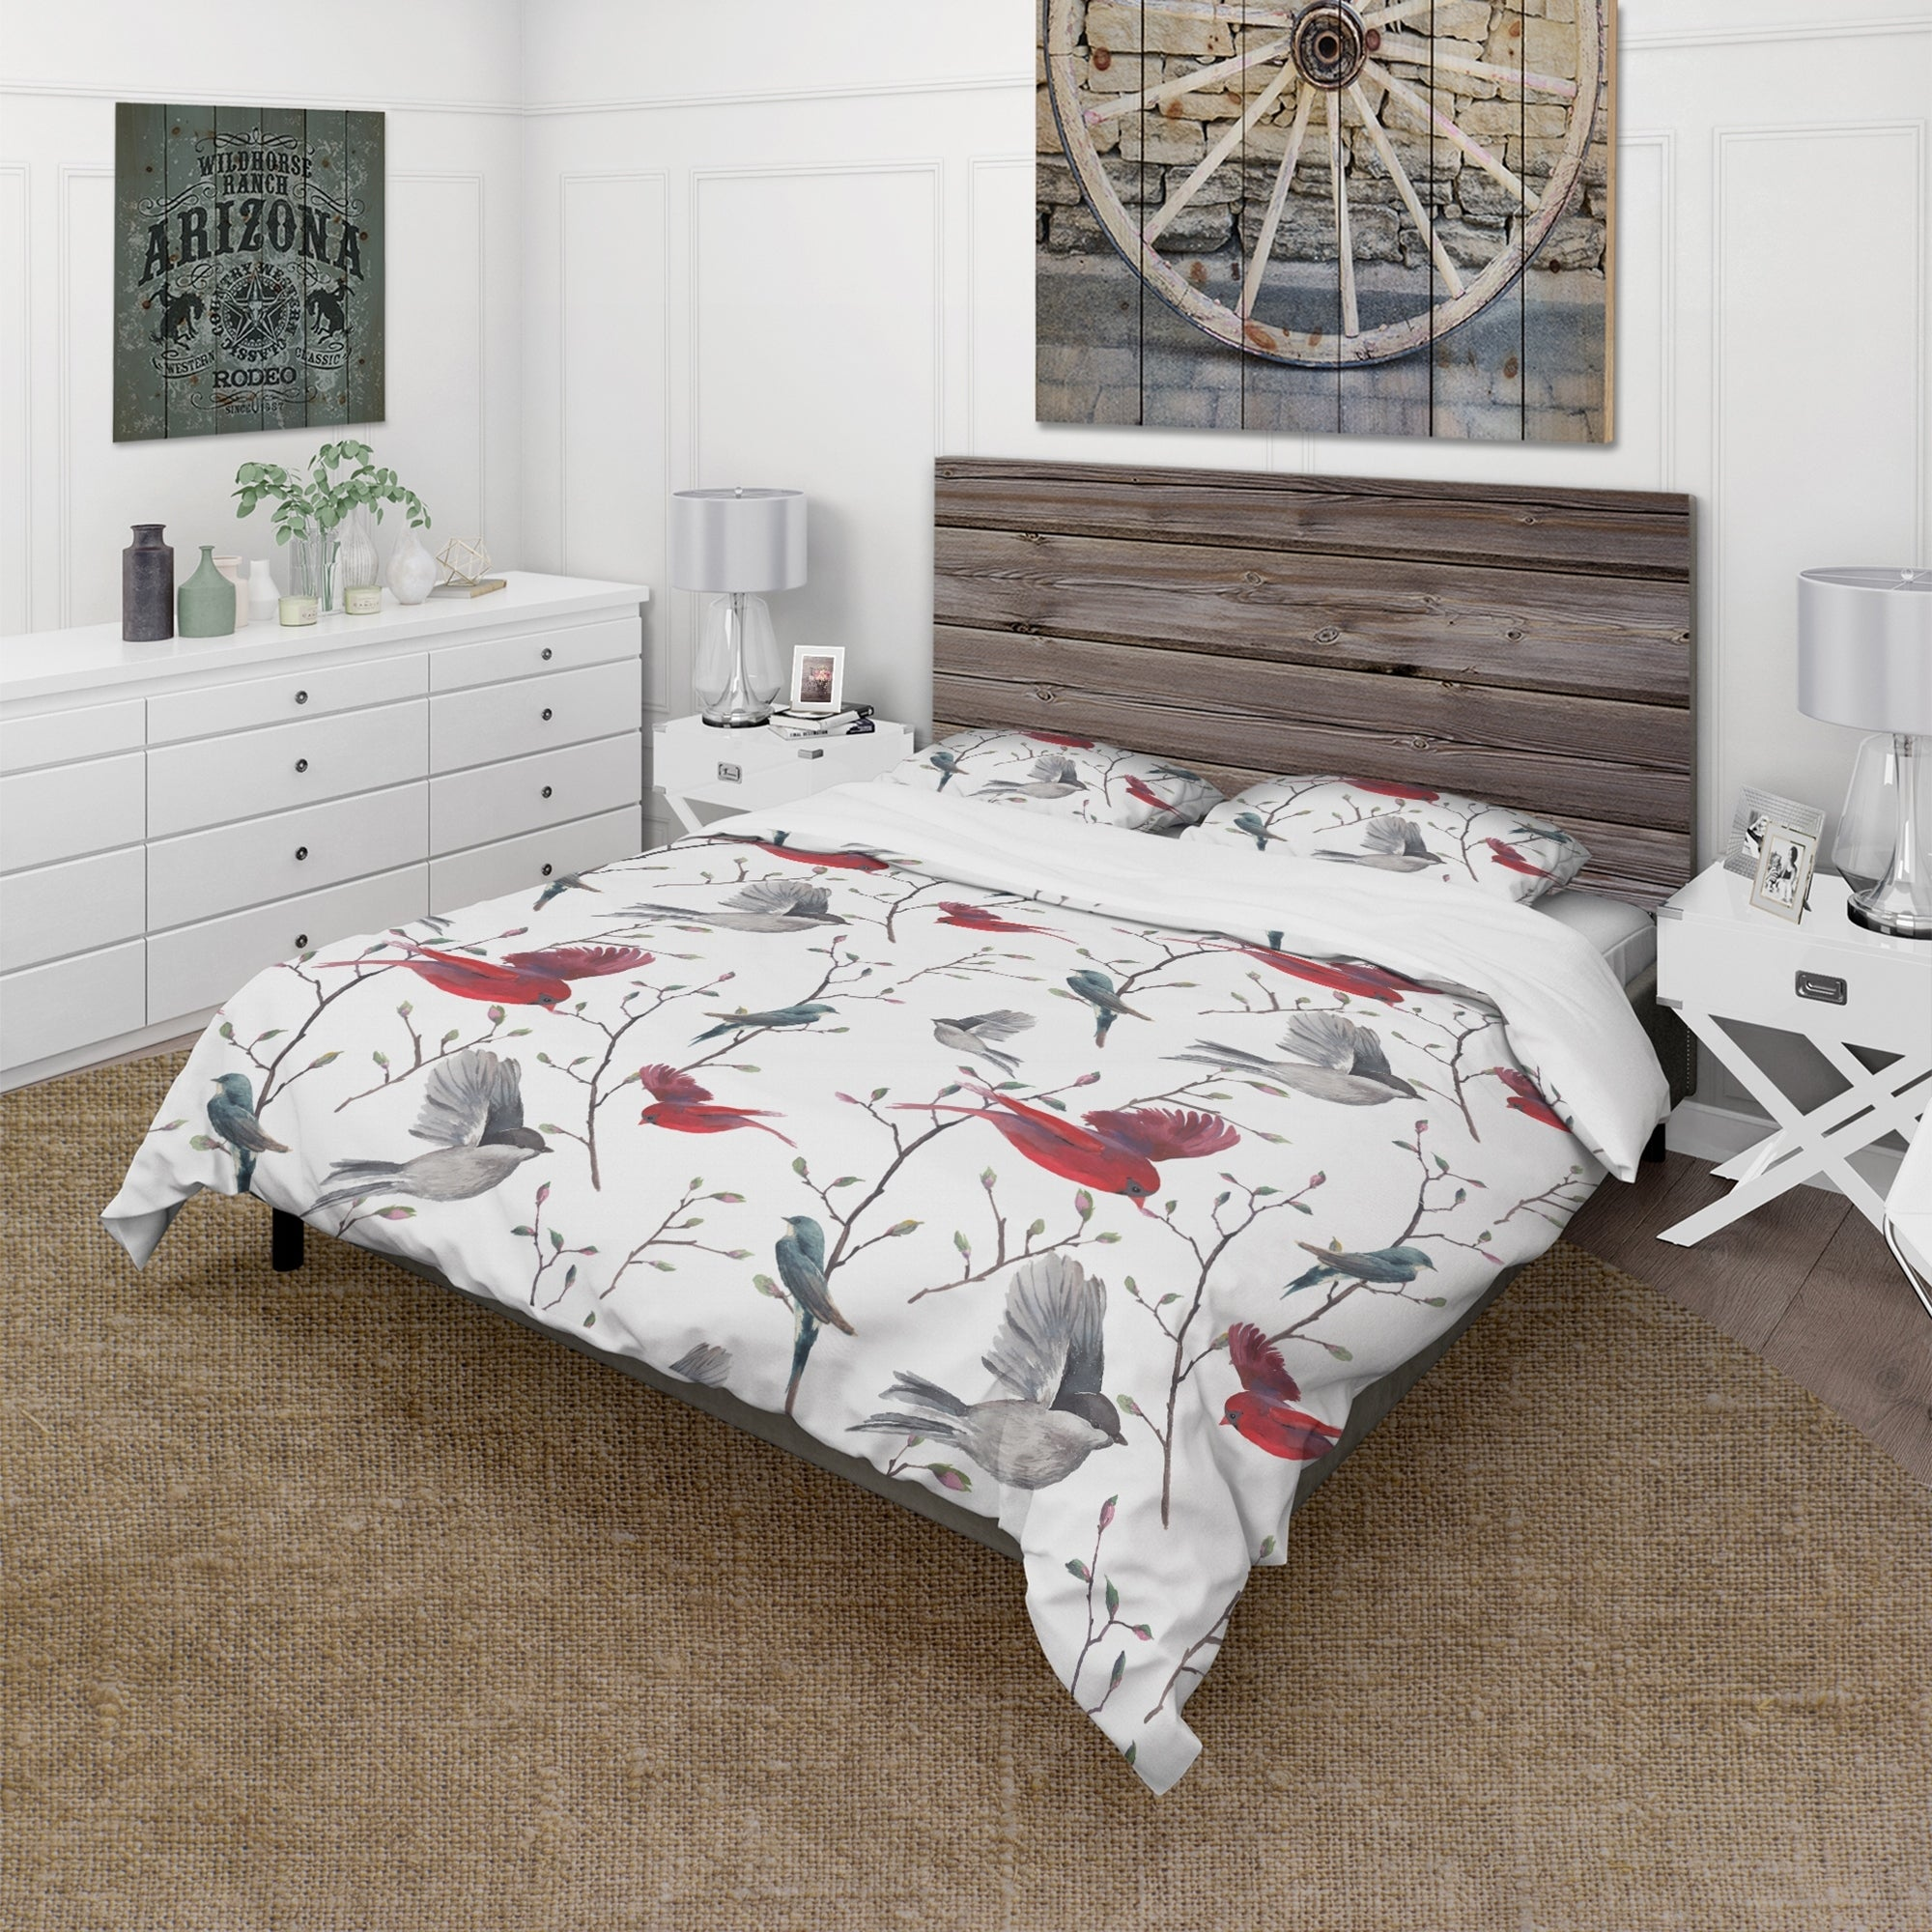 Designart Pattern With Birds Farmhouse Bedding Set Duvet Cover Shams On Sale Overstock 23506291